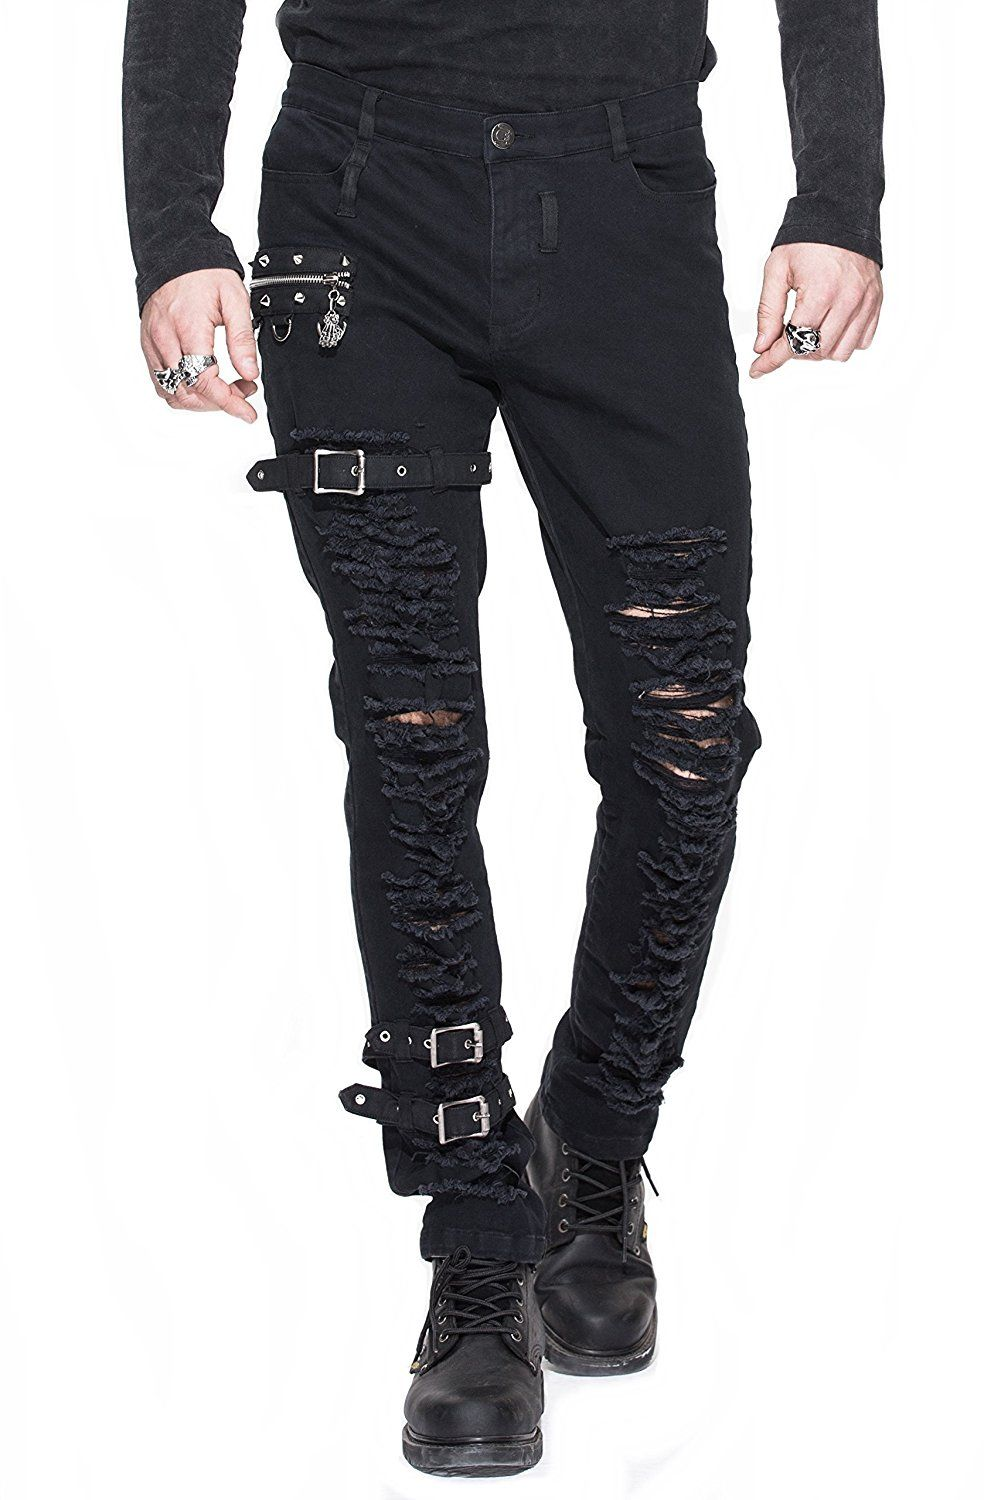 jeans hose herren trousers pants zerrissen schwarz mit schnallen nieten gothic punk rave schwarz. Black Bedroom Furniture Sets. Home Design Ideas